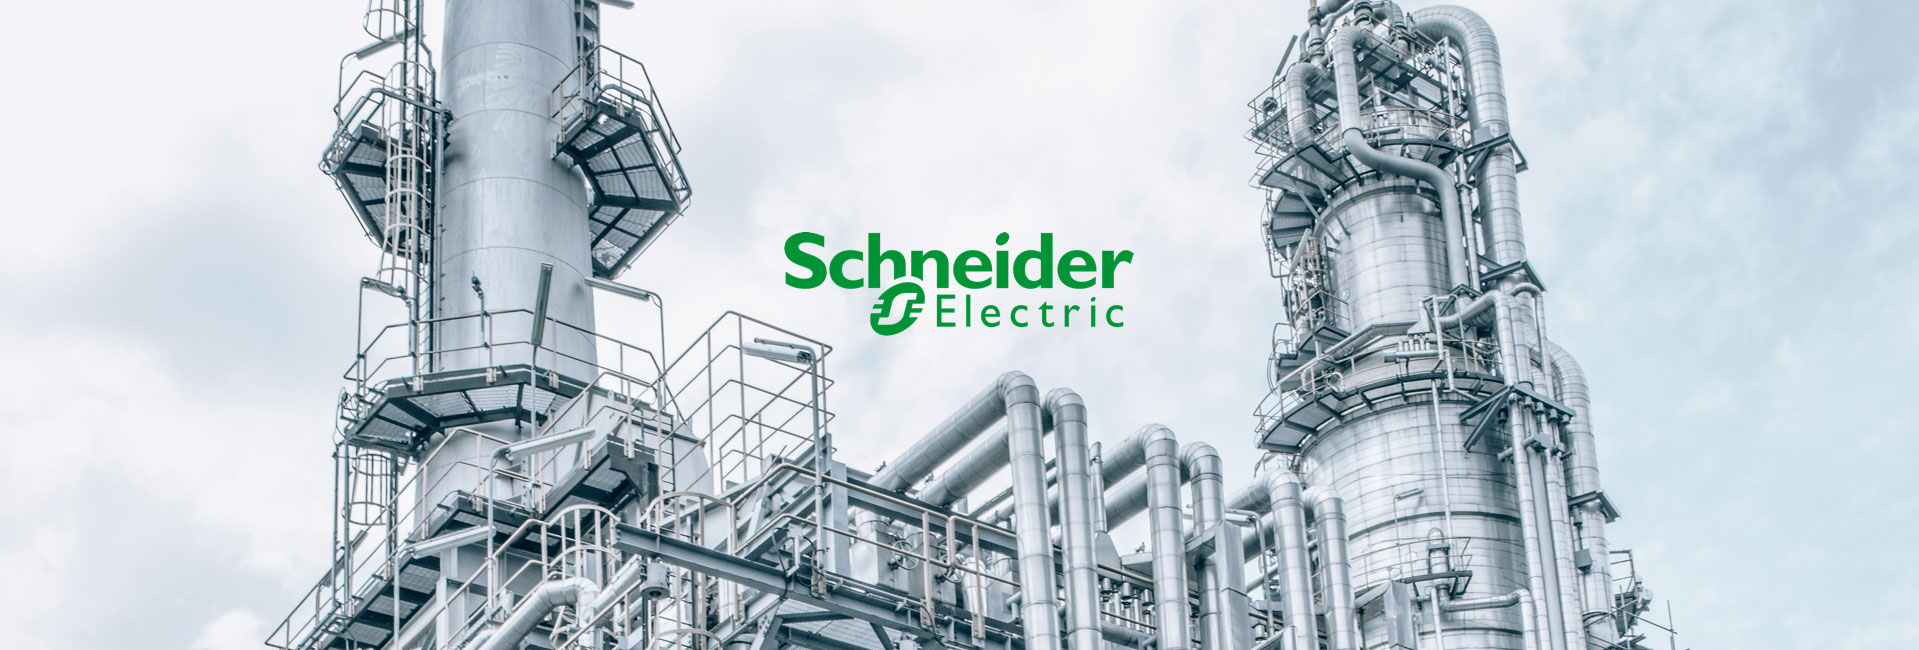 Schneider Electric – Life is on